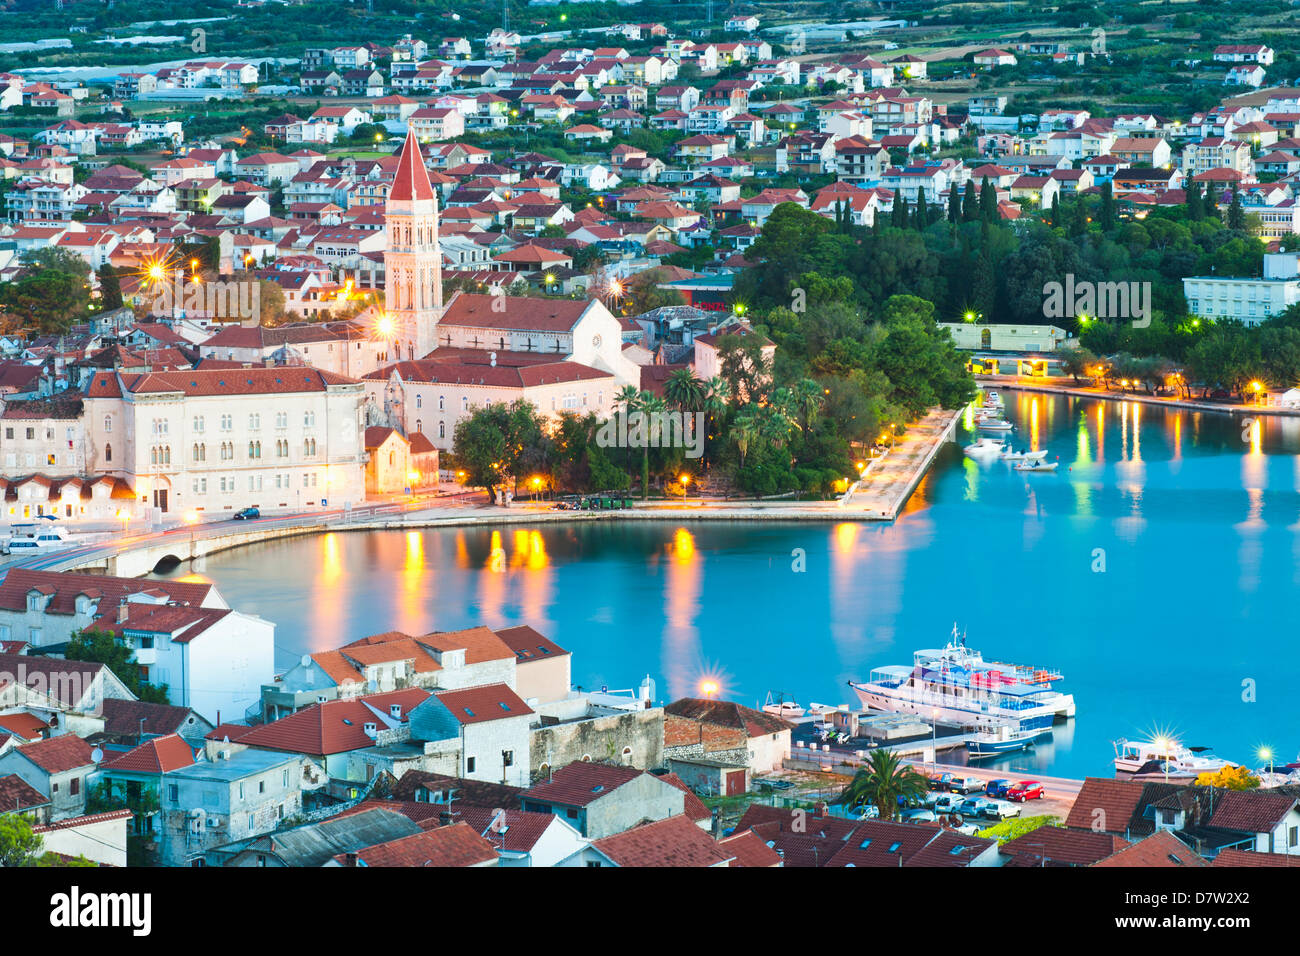 Cathedral of St. Lawrence in the evening, UNESCO World Heritage Site, Trogir, Dalmatian Coast, Adriatic, Croatia - Stock Image